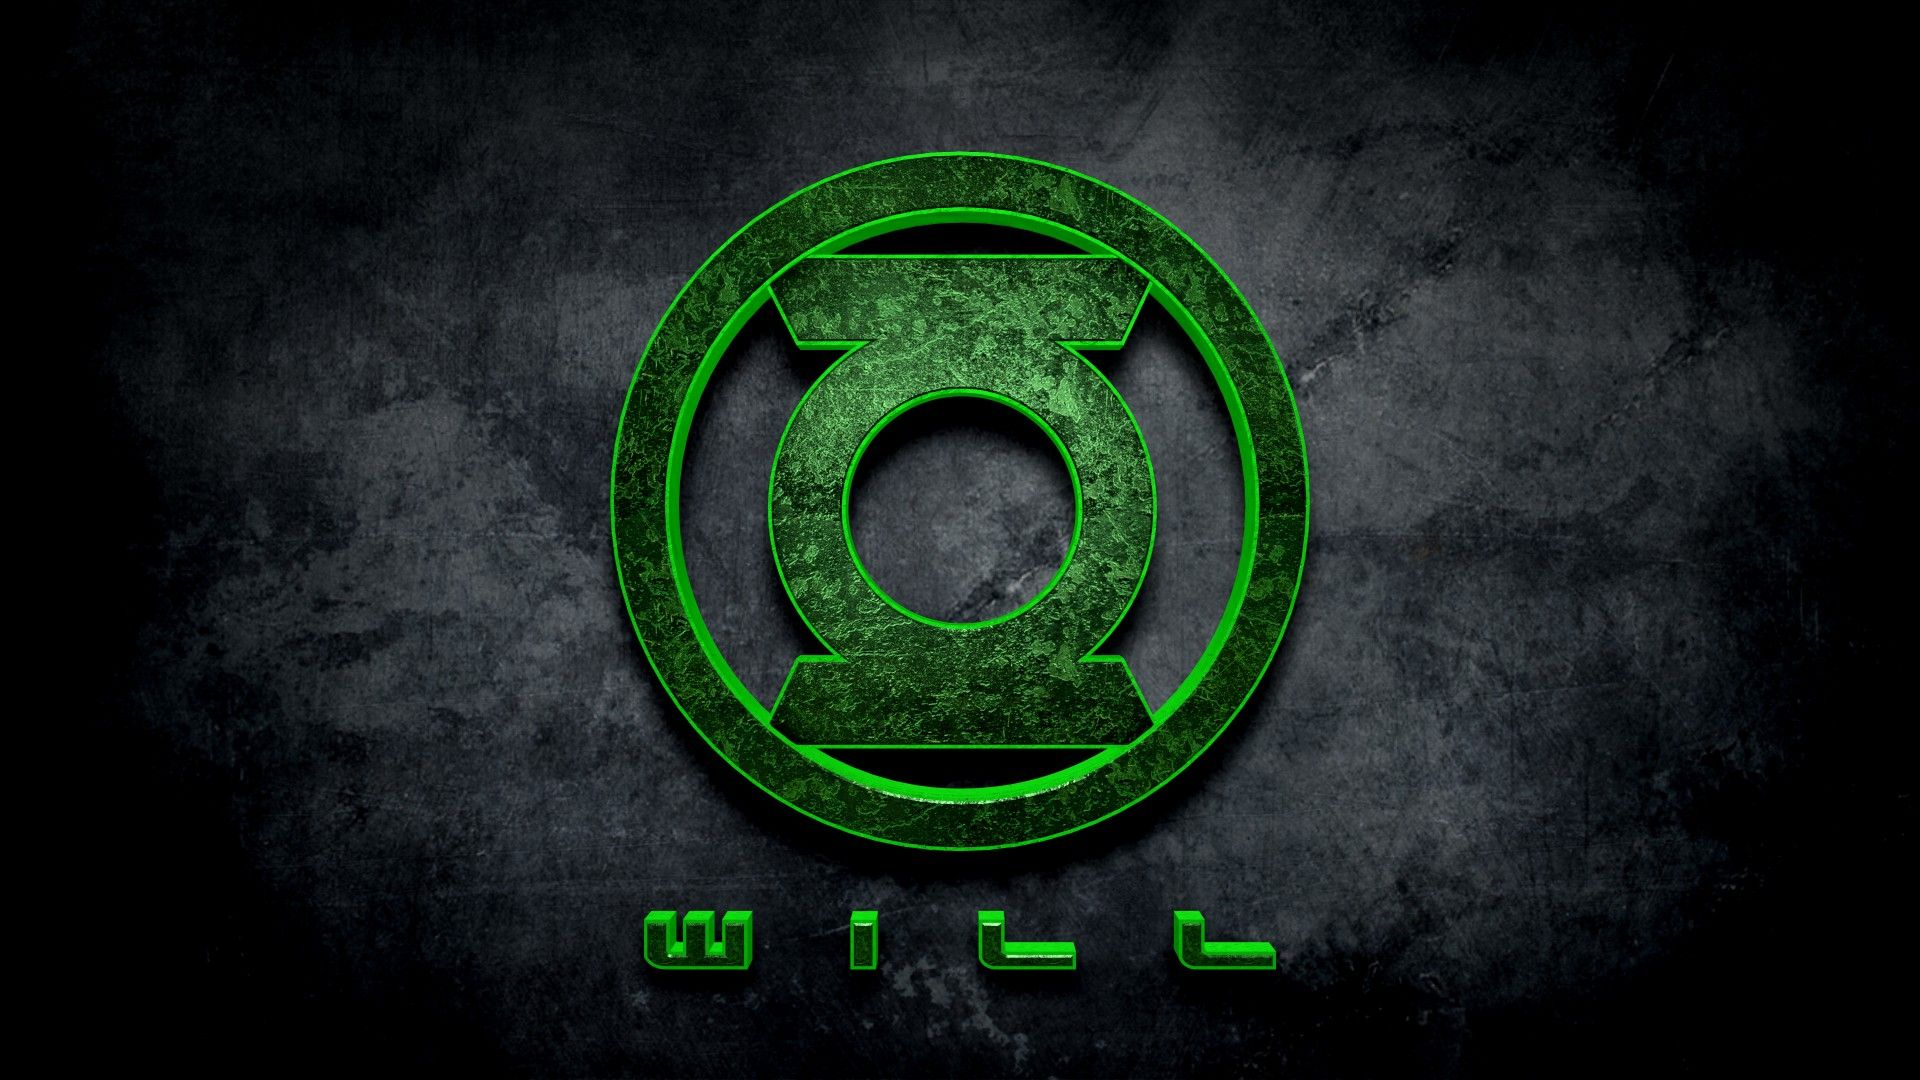 Green Lantern, DC Comics, Logo Wallpapers HD / Desktop and Mobile Backgrounds